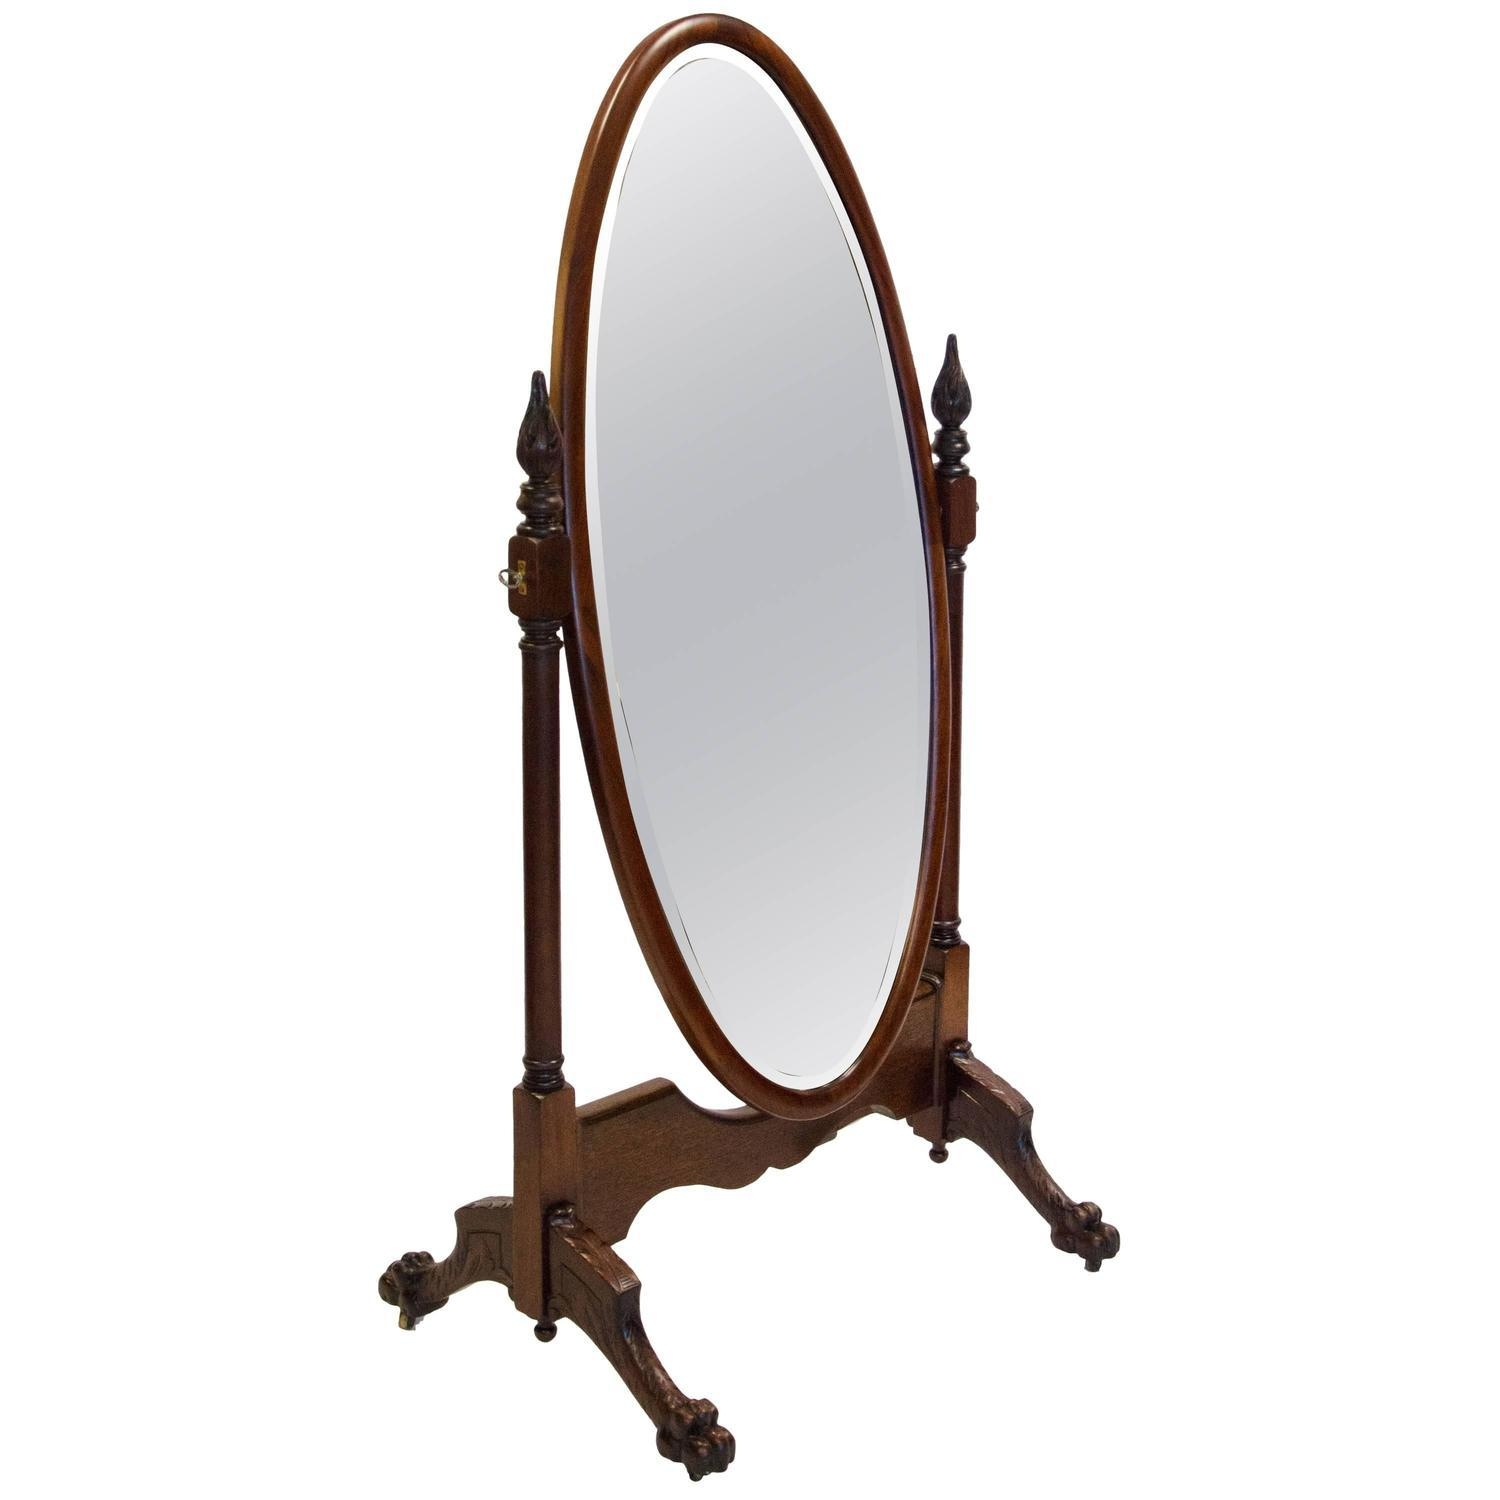 Victorian Floor Mirrors And Full Length Mirrors – 22 For Sale At In Victorian Full Length Mirror (Image 20 of 20)